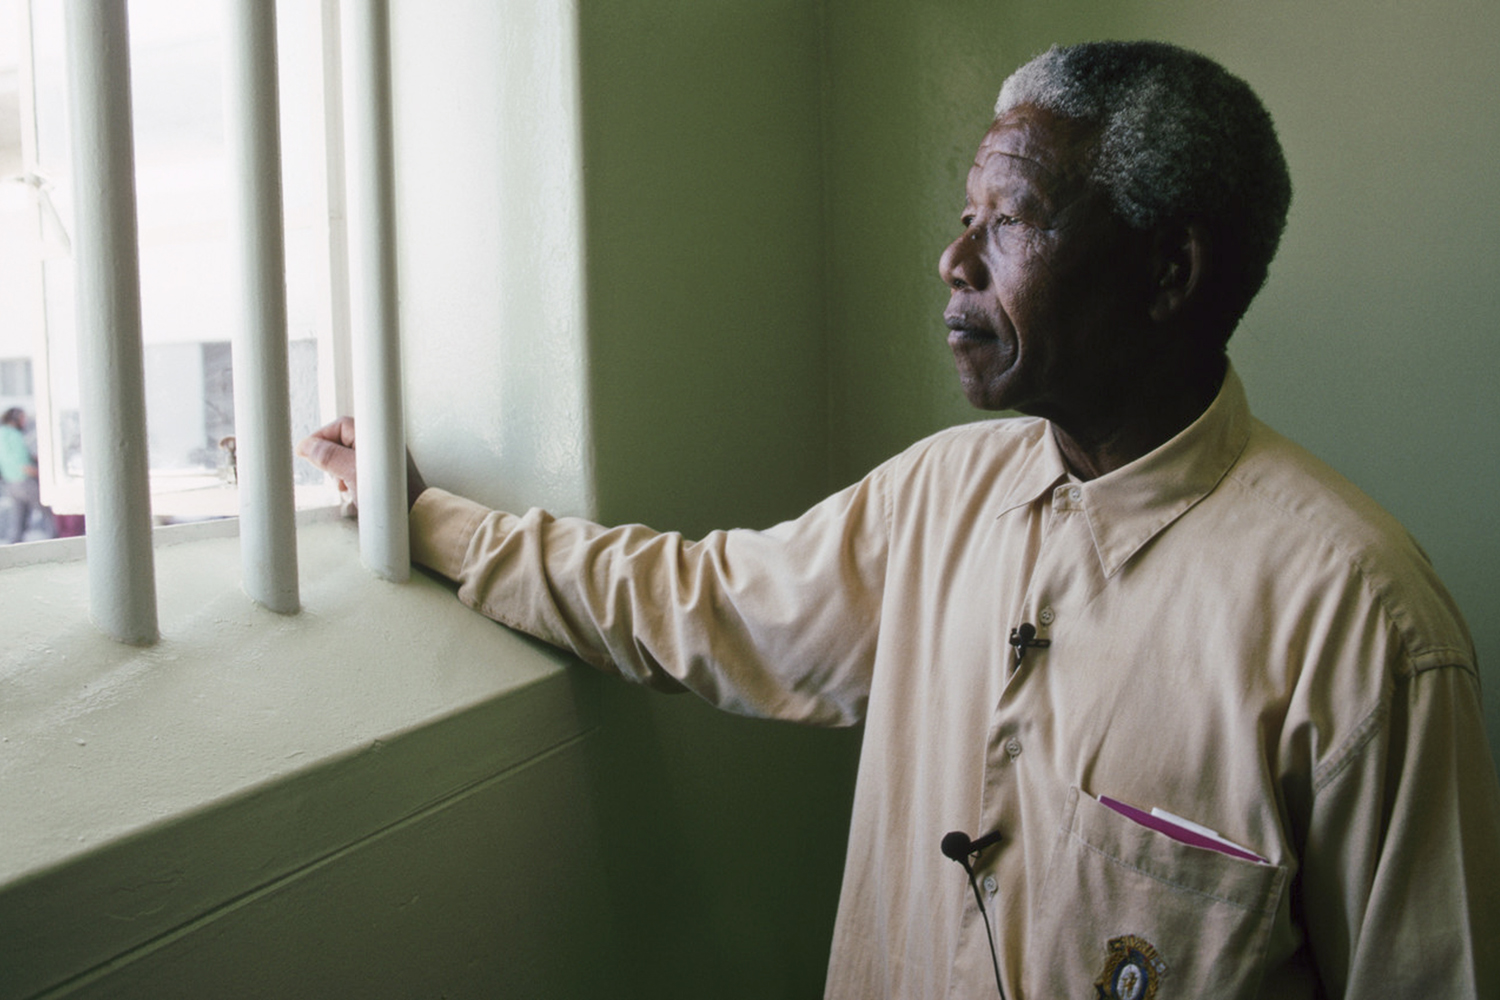 Nelson Mandela was sent to Robben Island with a life sentence for treason for his participation in the African National Congress (ANC) in 1964. He spent 19 of his 27 years in this prison cell on Robben Island, and the remaining years on the mainland on the edge of Cape Town in Pollsmoor Prison.